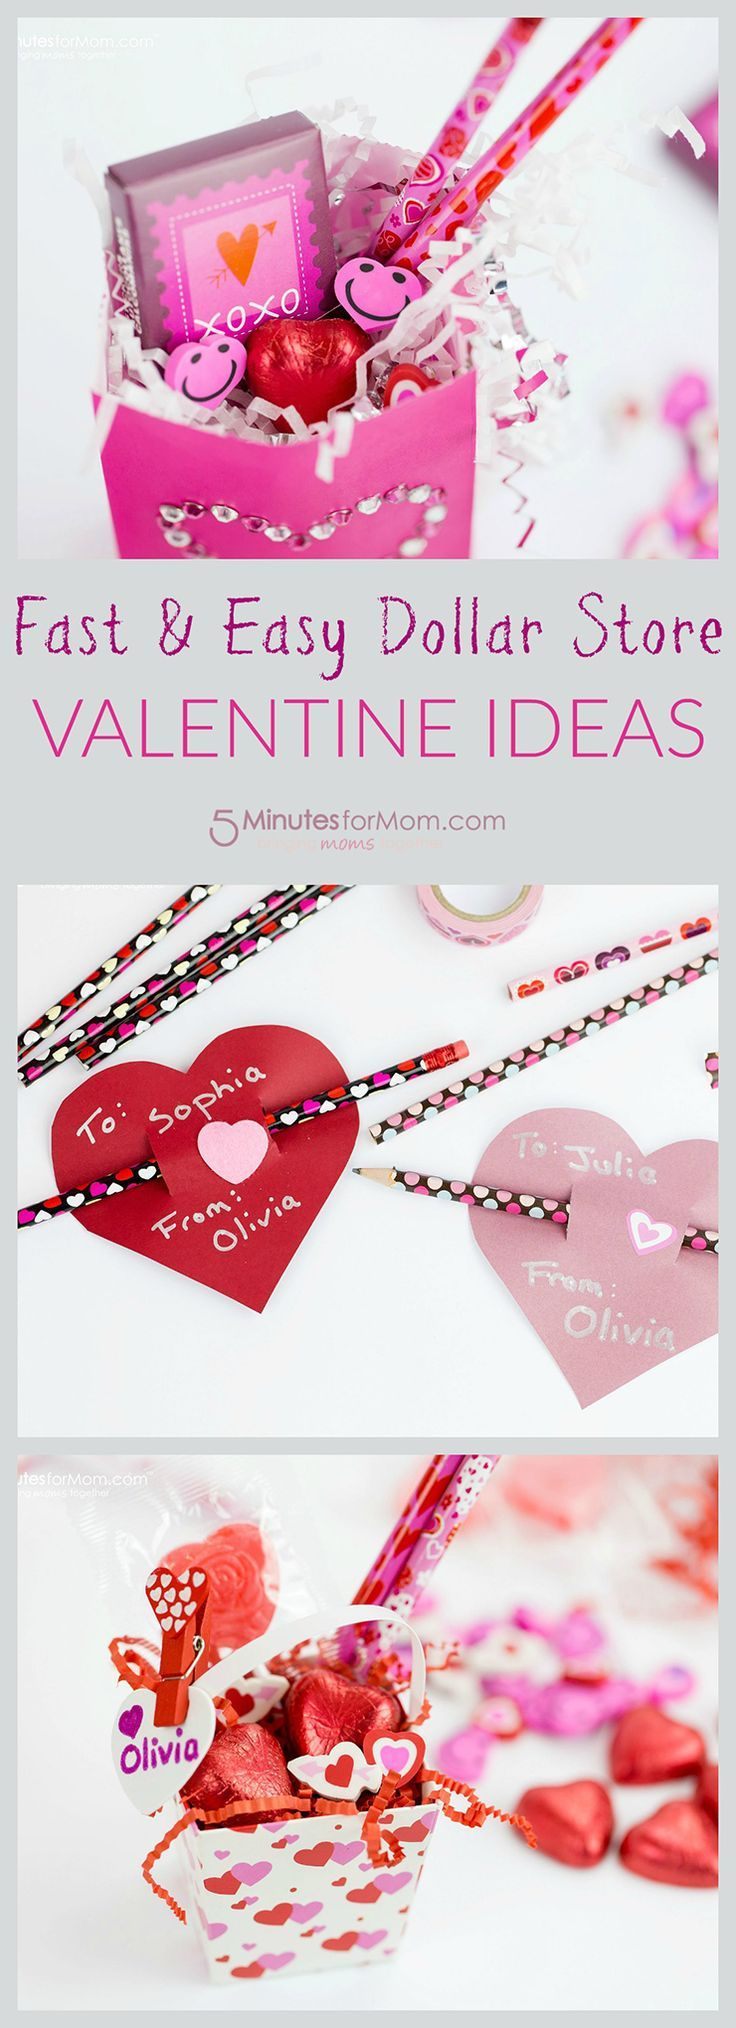 Fast and Easy Valentine's Day Dollar Store Ideas